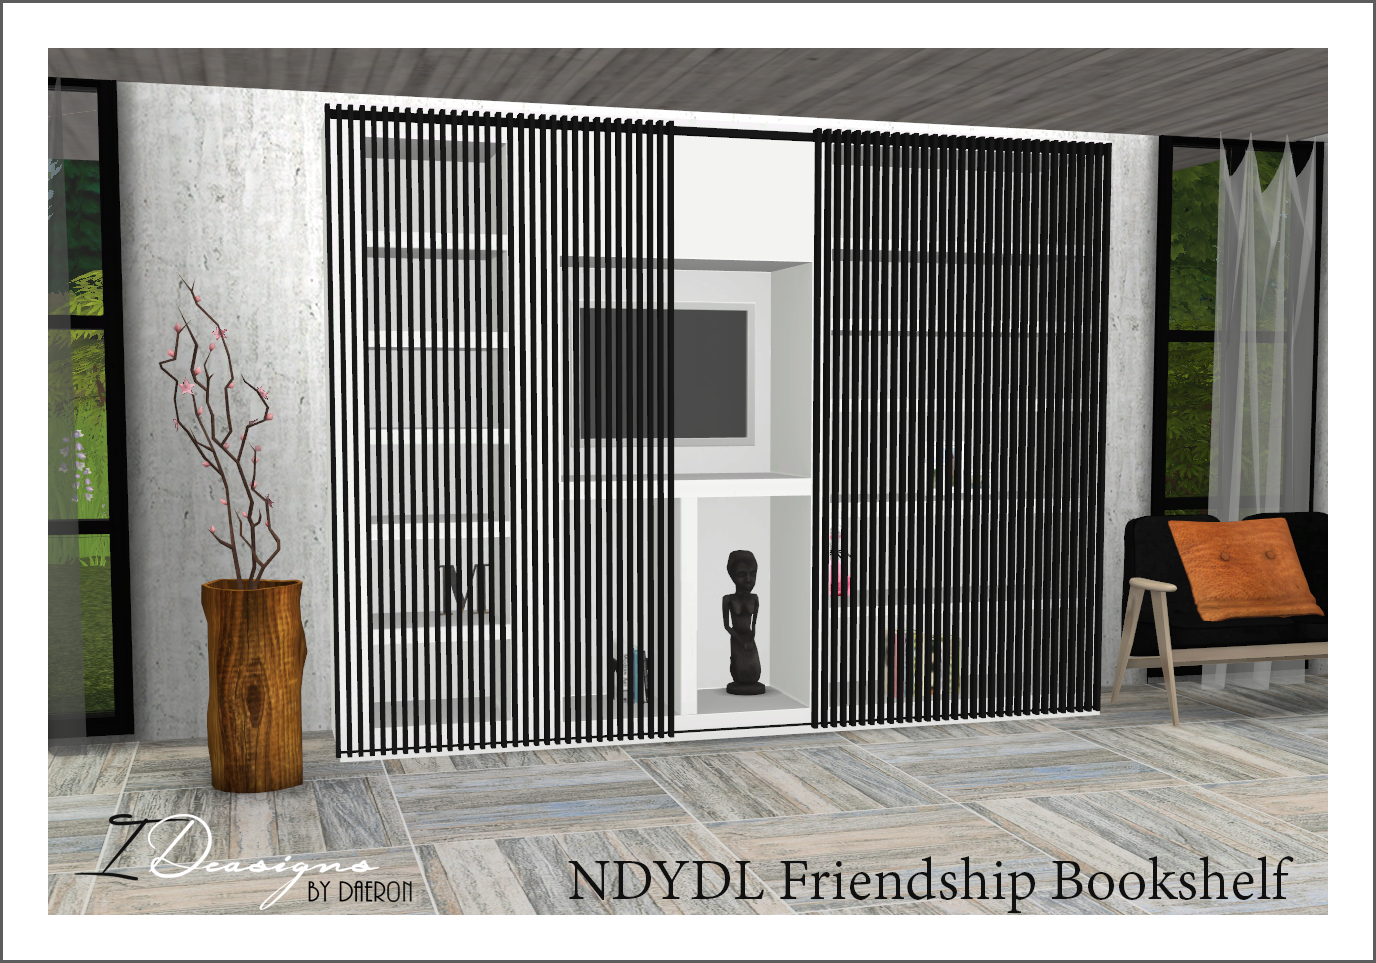 Very Impressive portraiture of My Sims 4 Blog: Friendship Bookshelf by Daer0n with #A1572A color and 1376x963 pixels